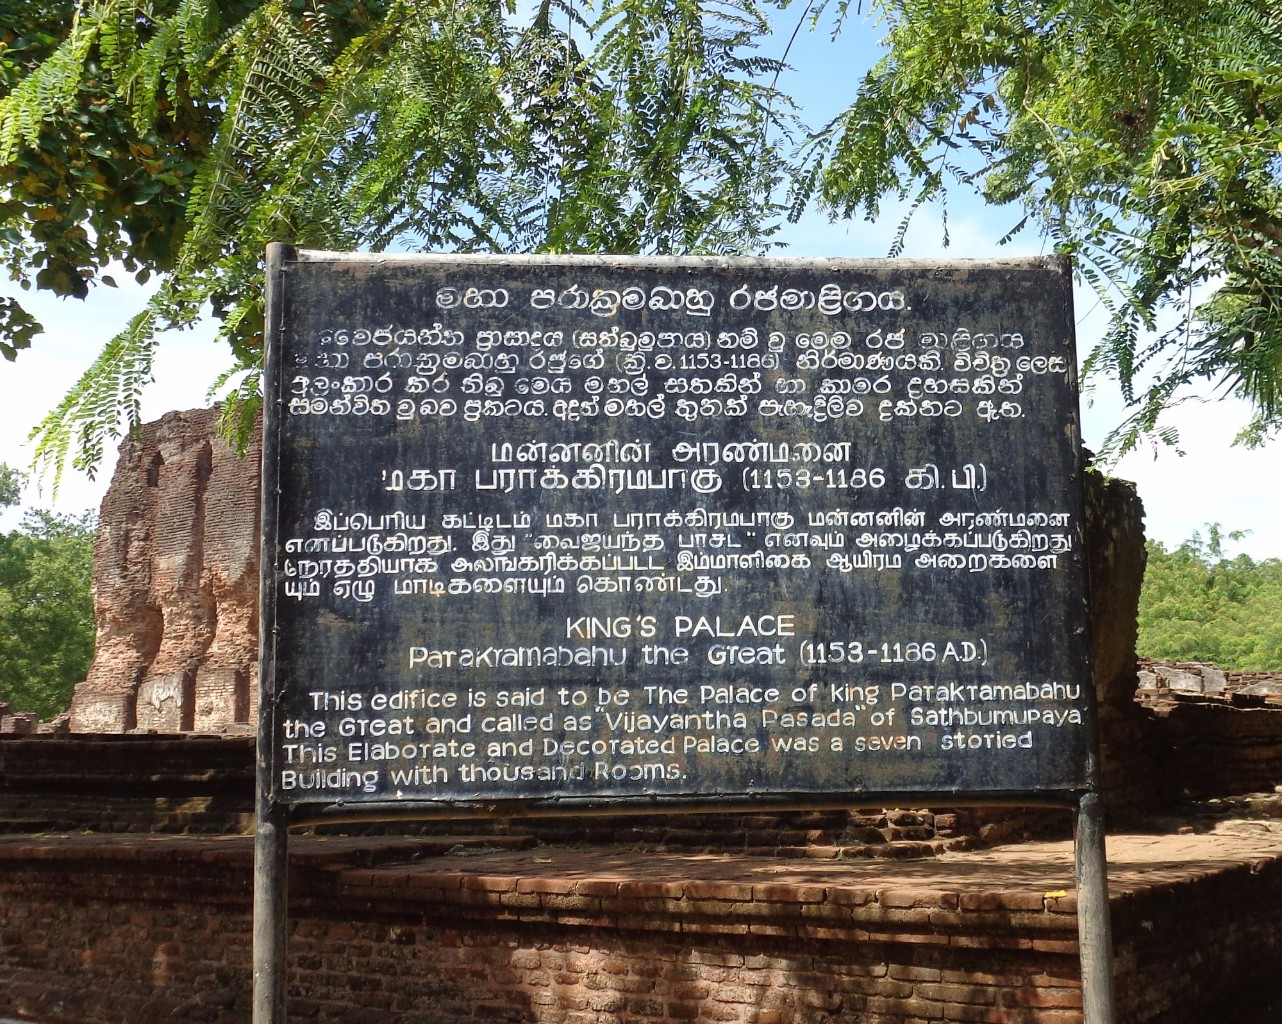 Palace-of-King-Parakramabahu-18